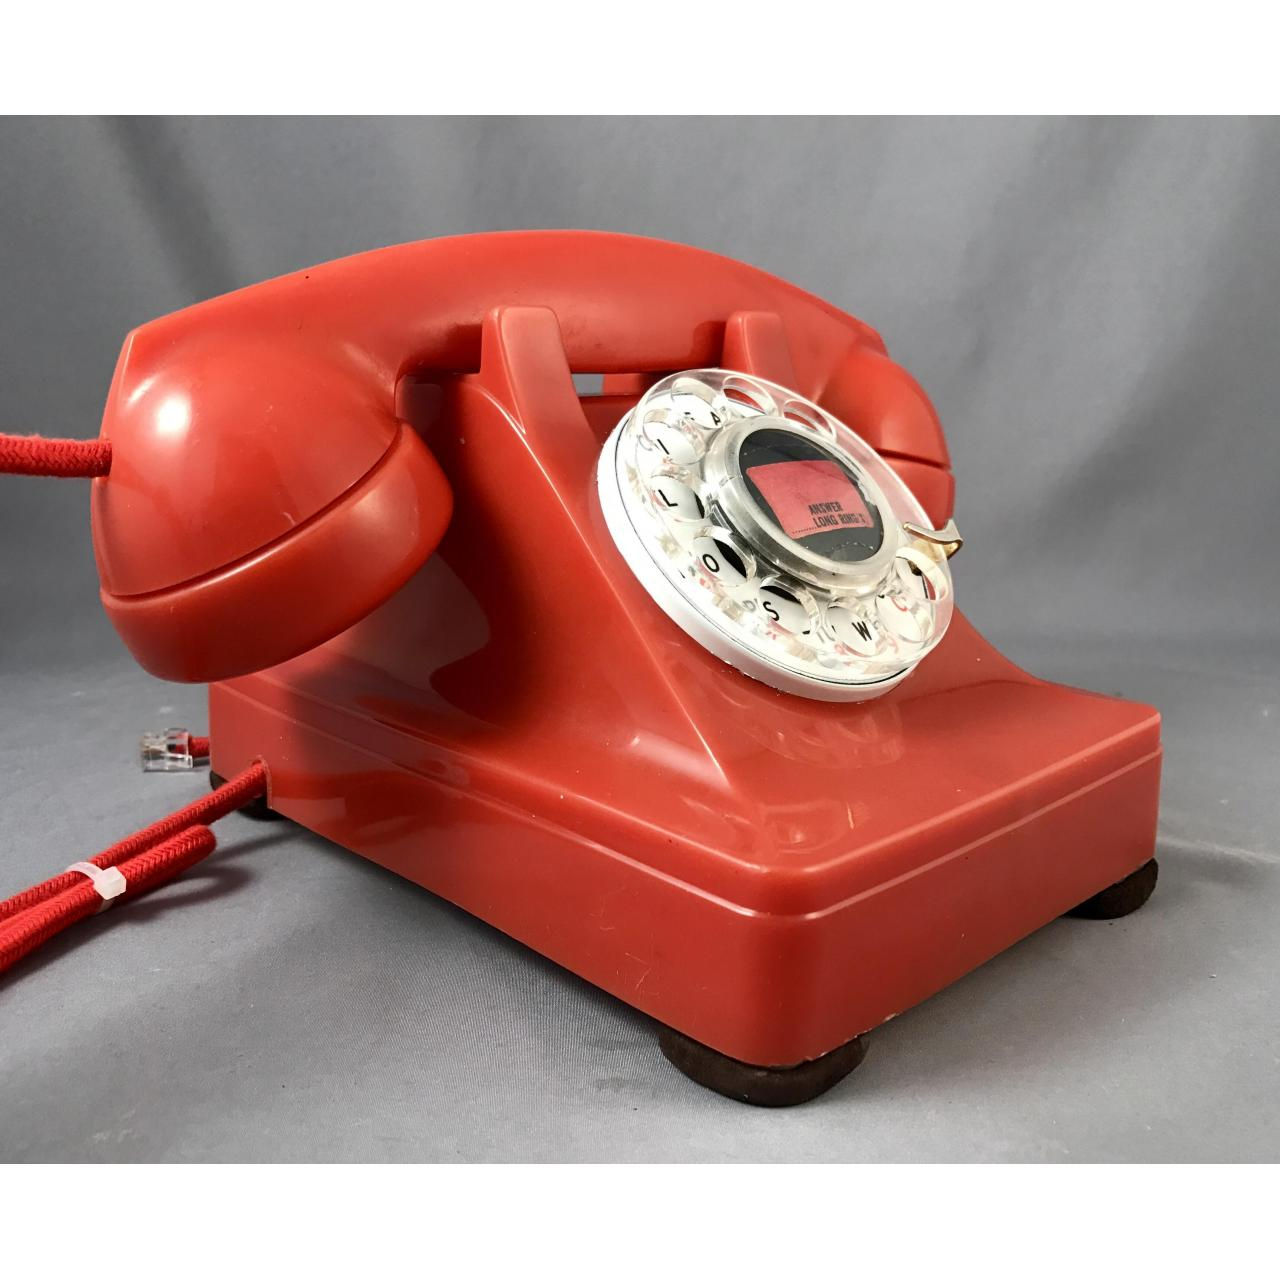 Cheap 302 - Red - Fully Refurbished Antique Phones wholesale